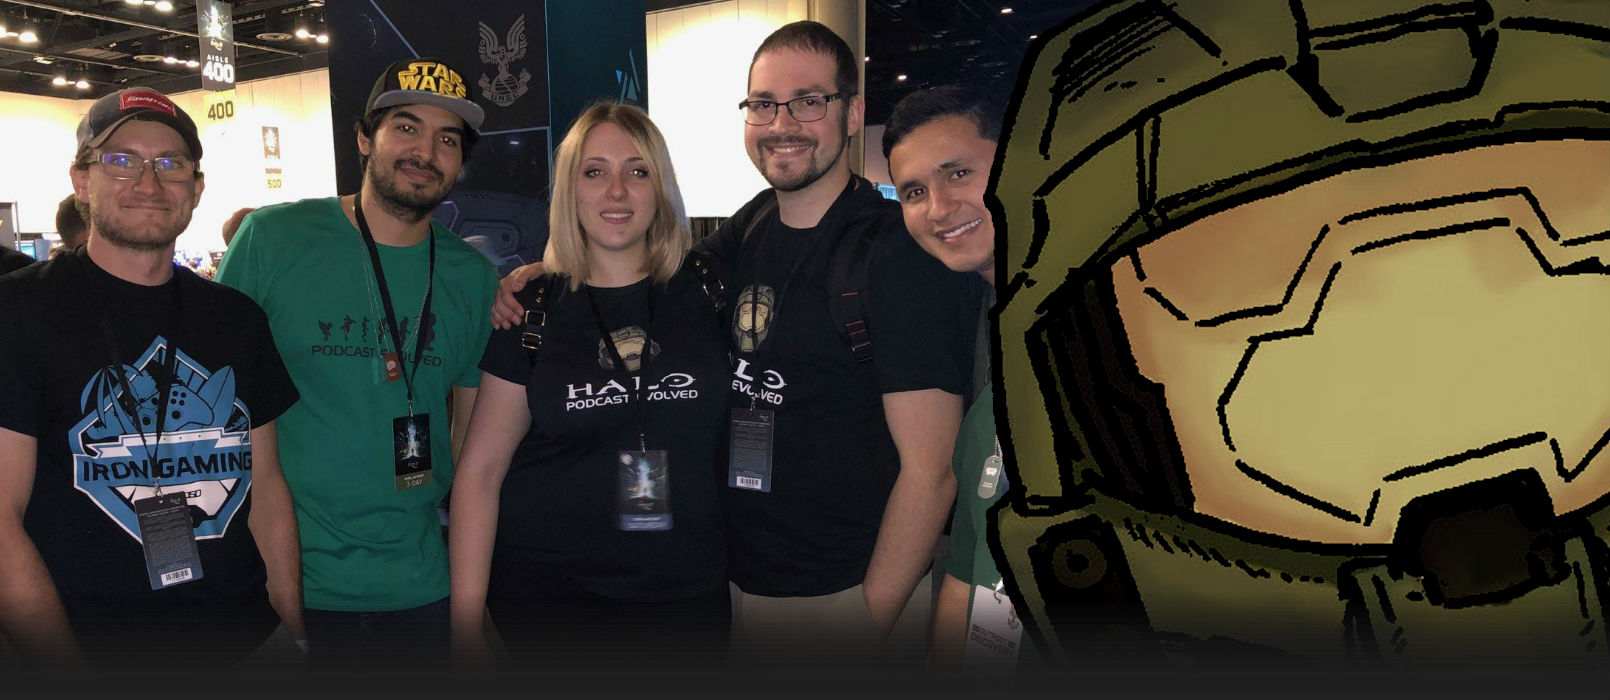 Evolved Visits • 2016 - Community showcase of member meet-ups, Halo events, and tournaments